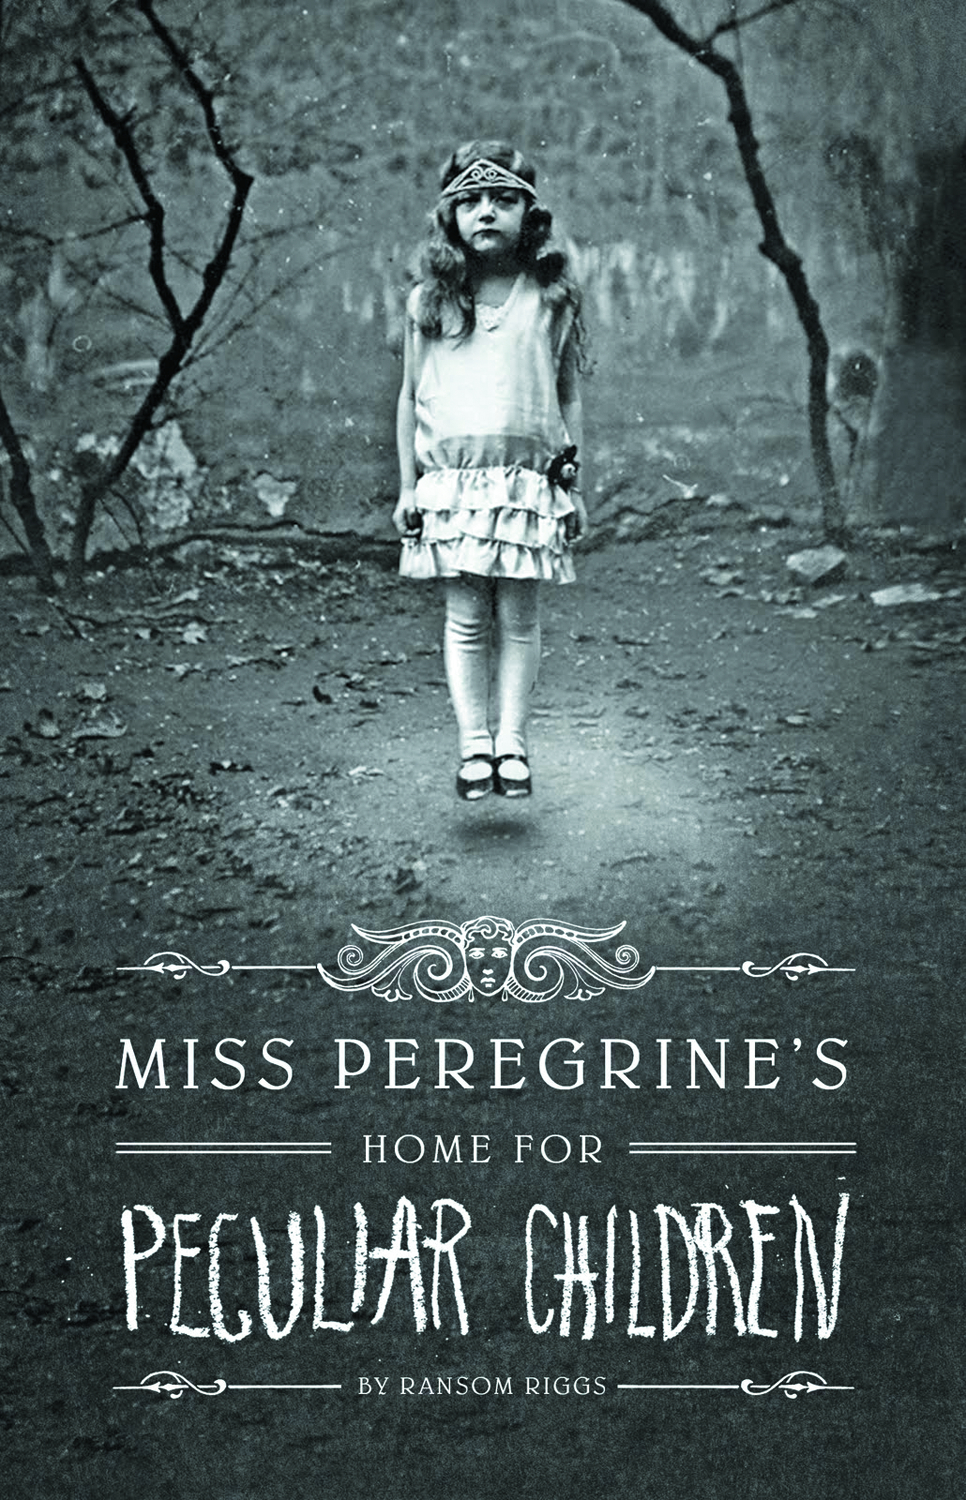 MISS PEREGRINES HOME FOR PECULIAR CHILDREN HC BOOK 1